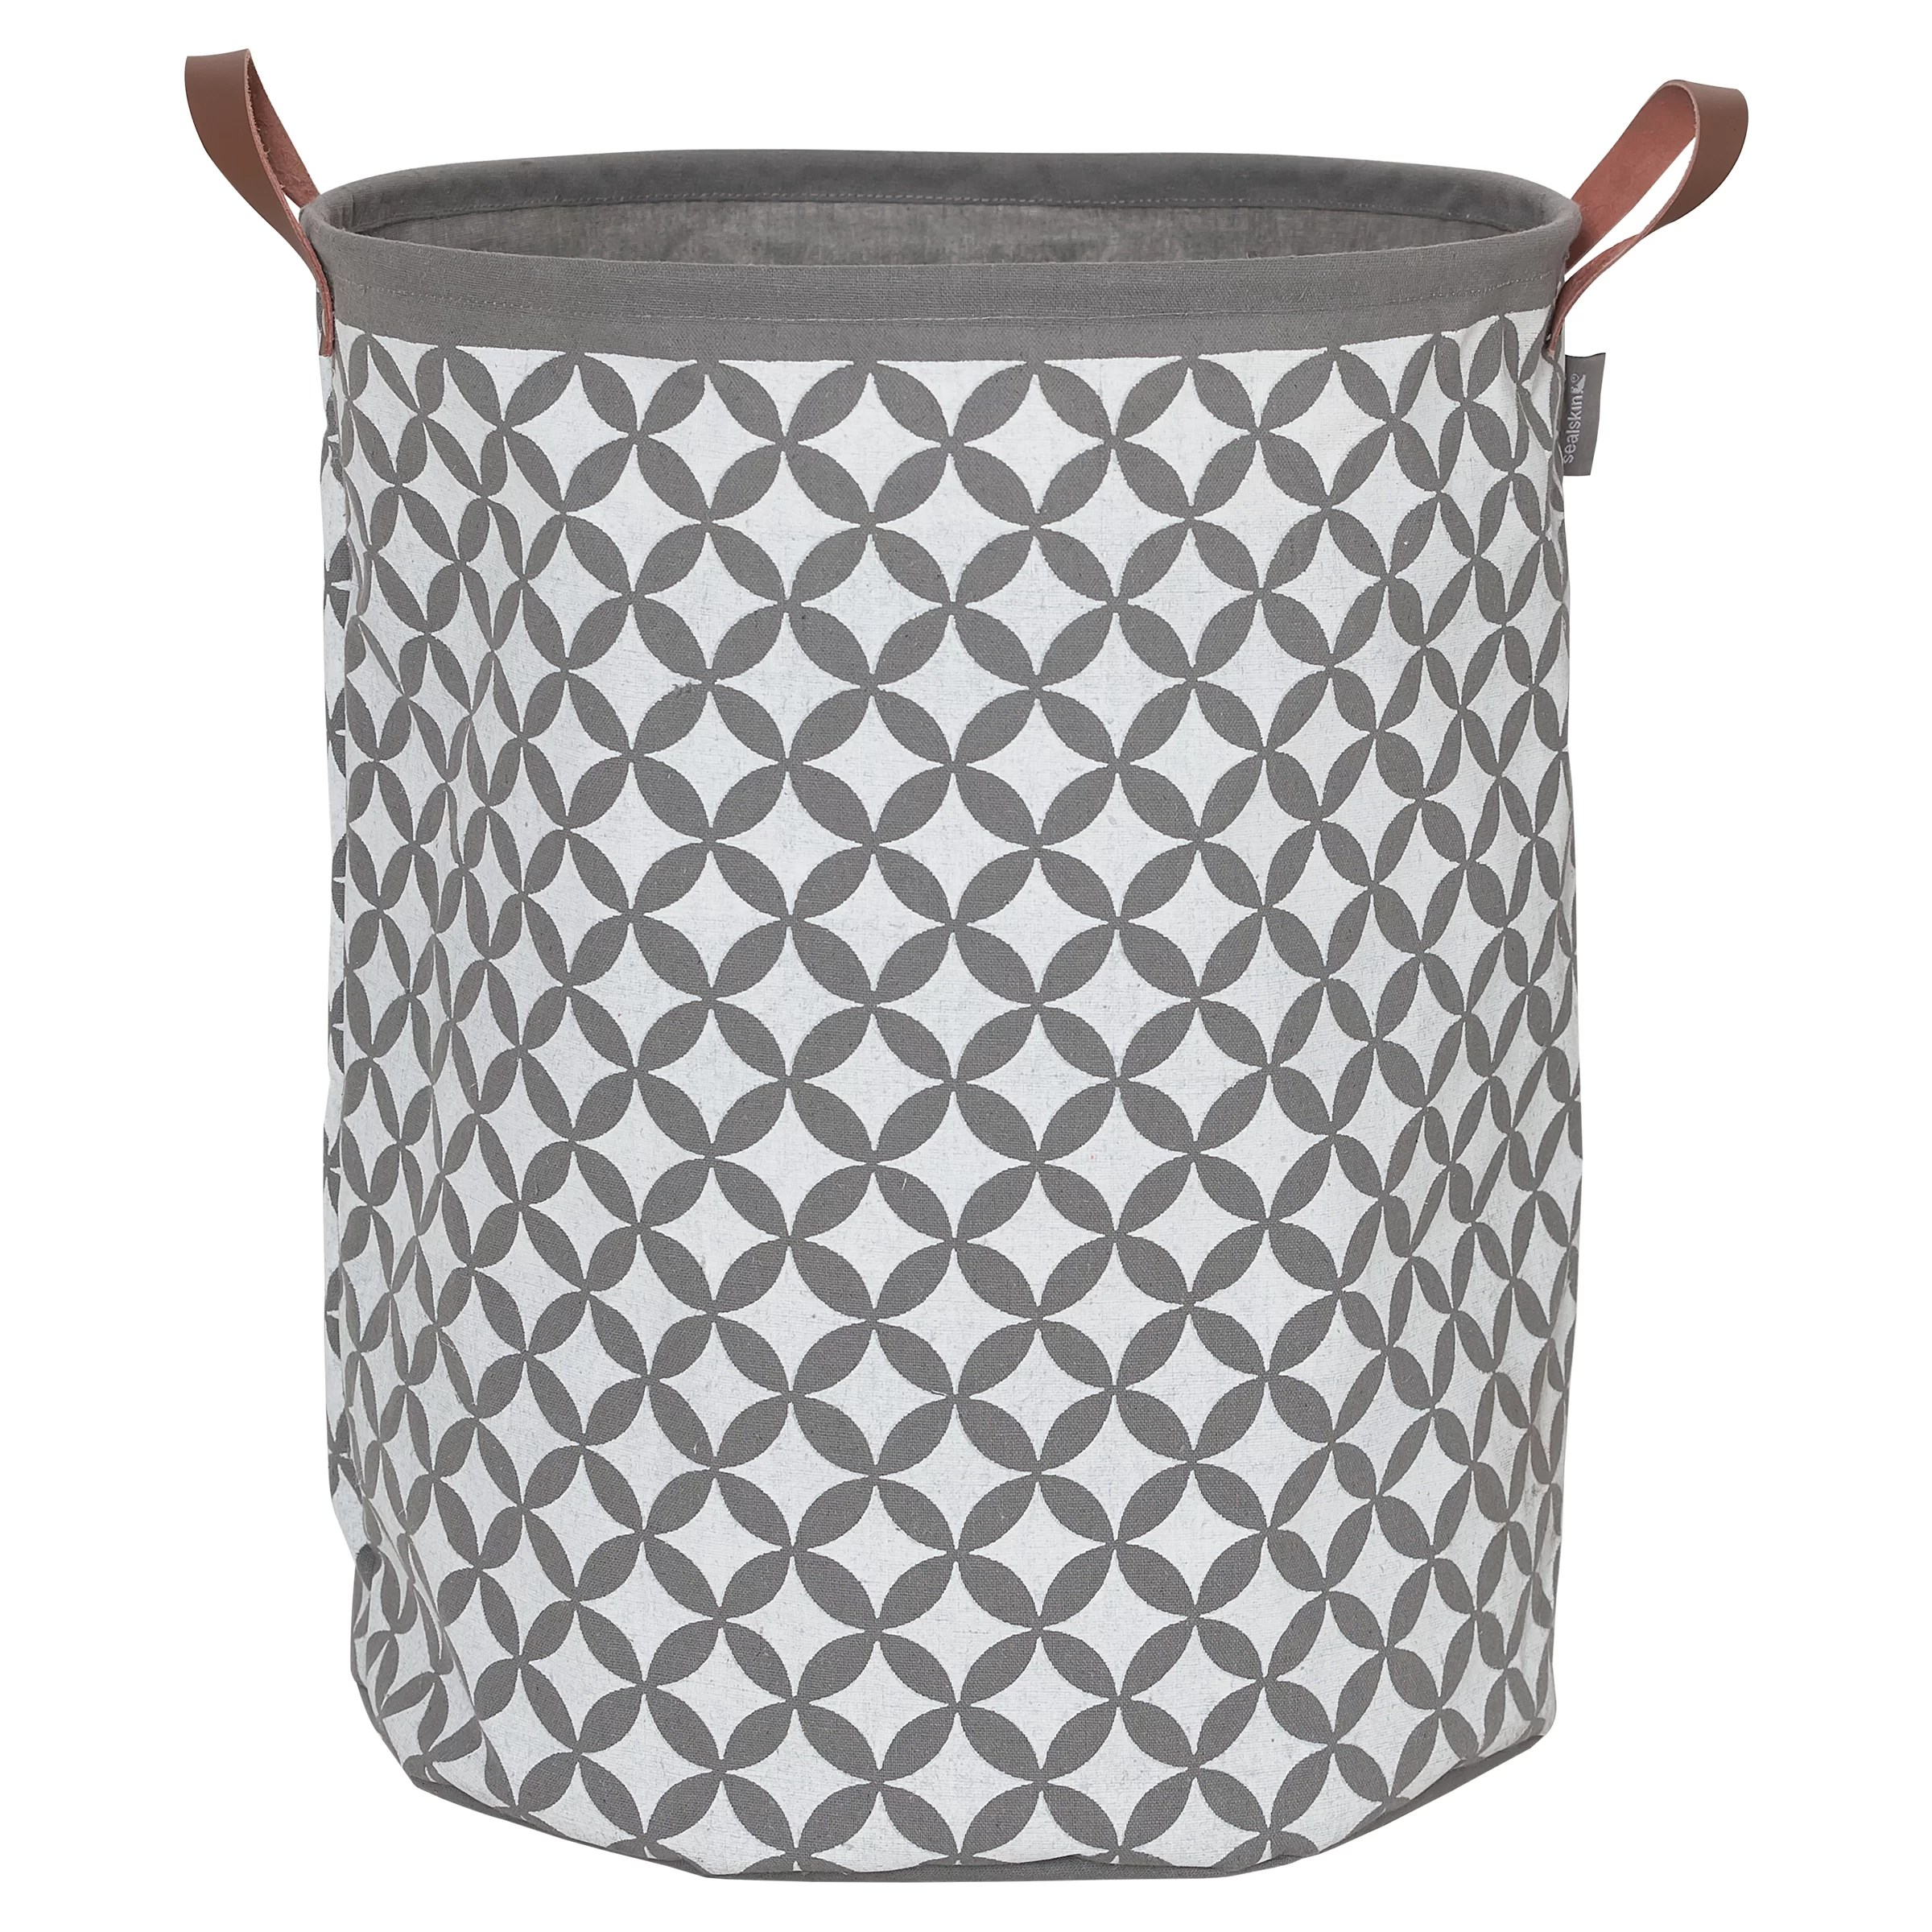 Designer Wäschekorb Diamonds Laundry Basket